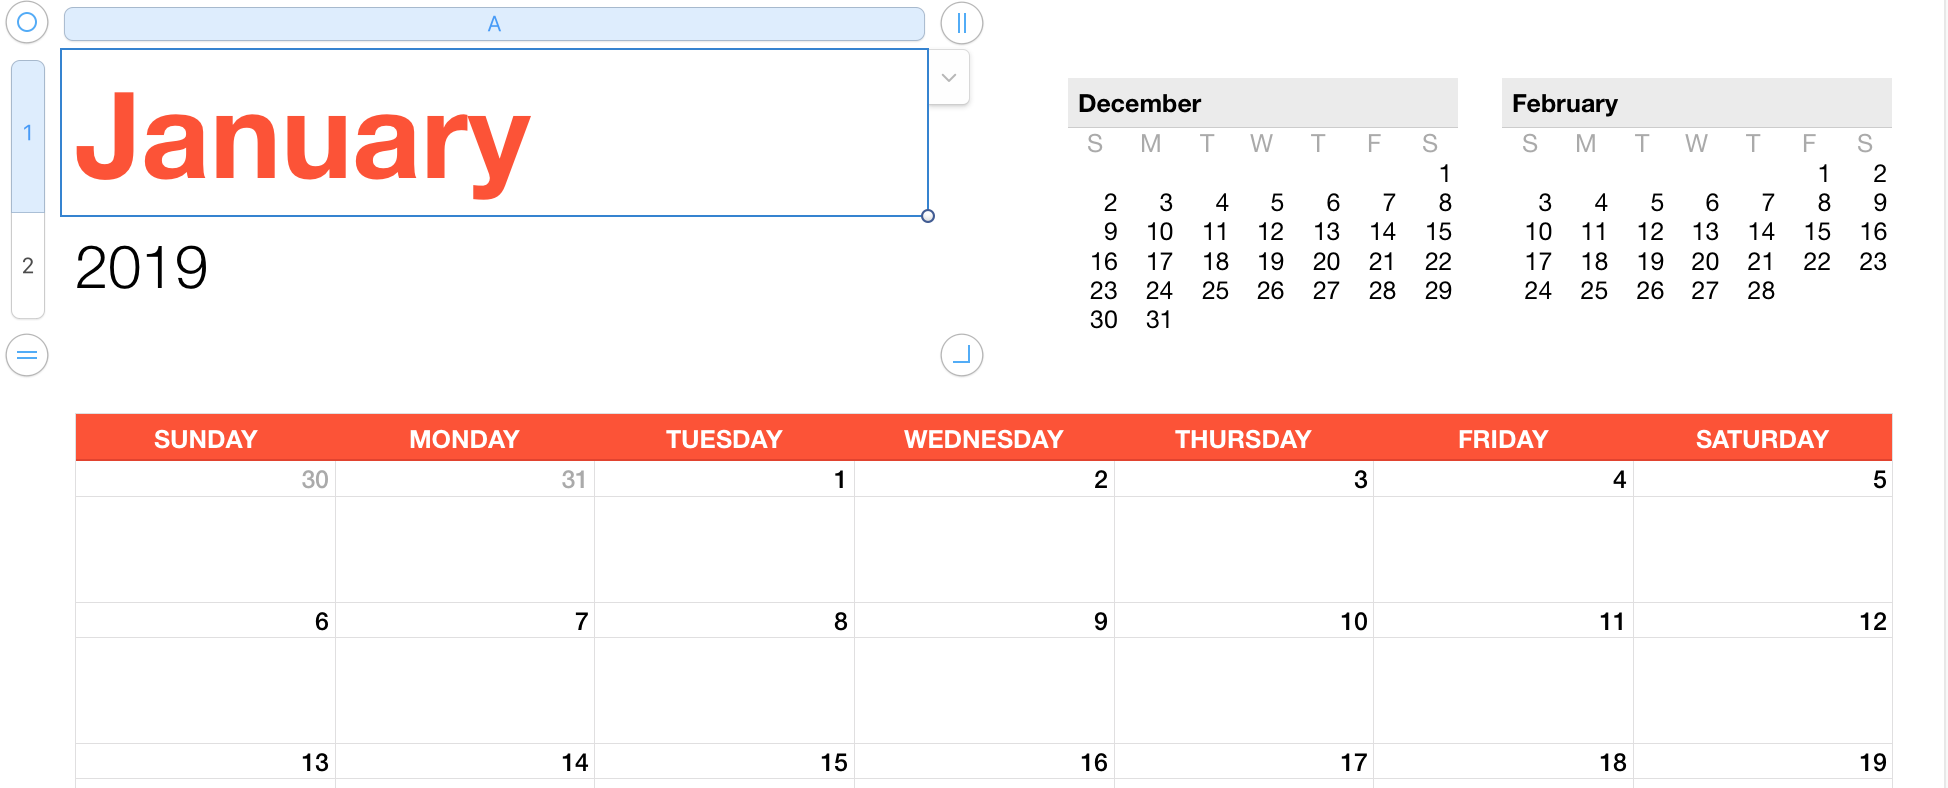 Calendrier 2019 Word Modifiable.2019 Calendar Templates Apple Community